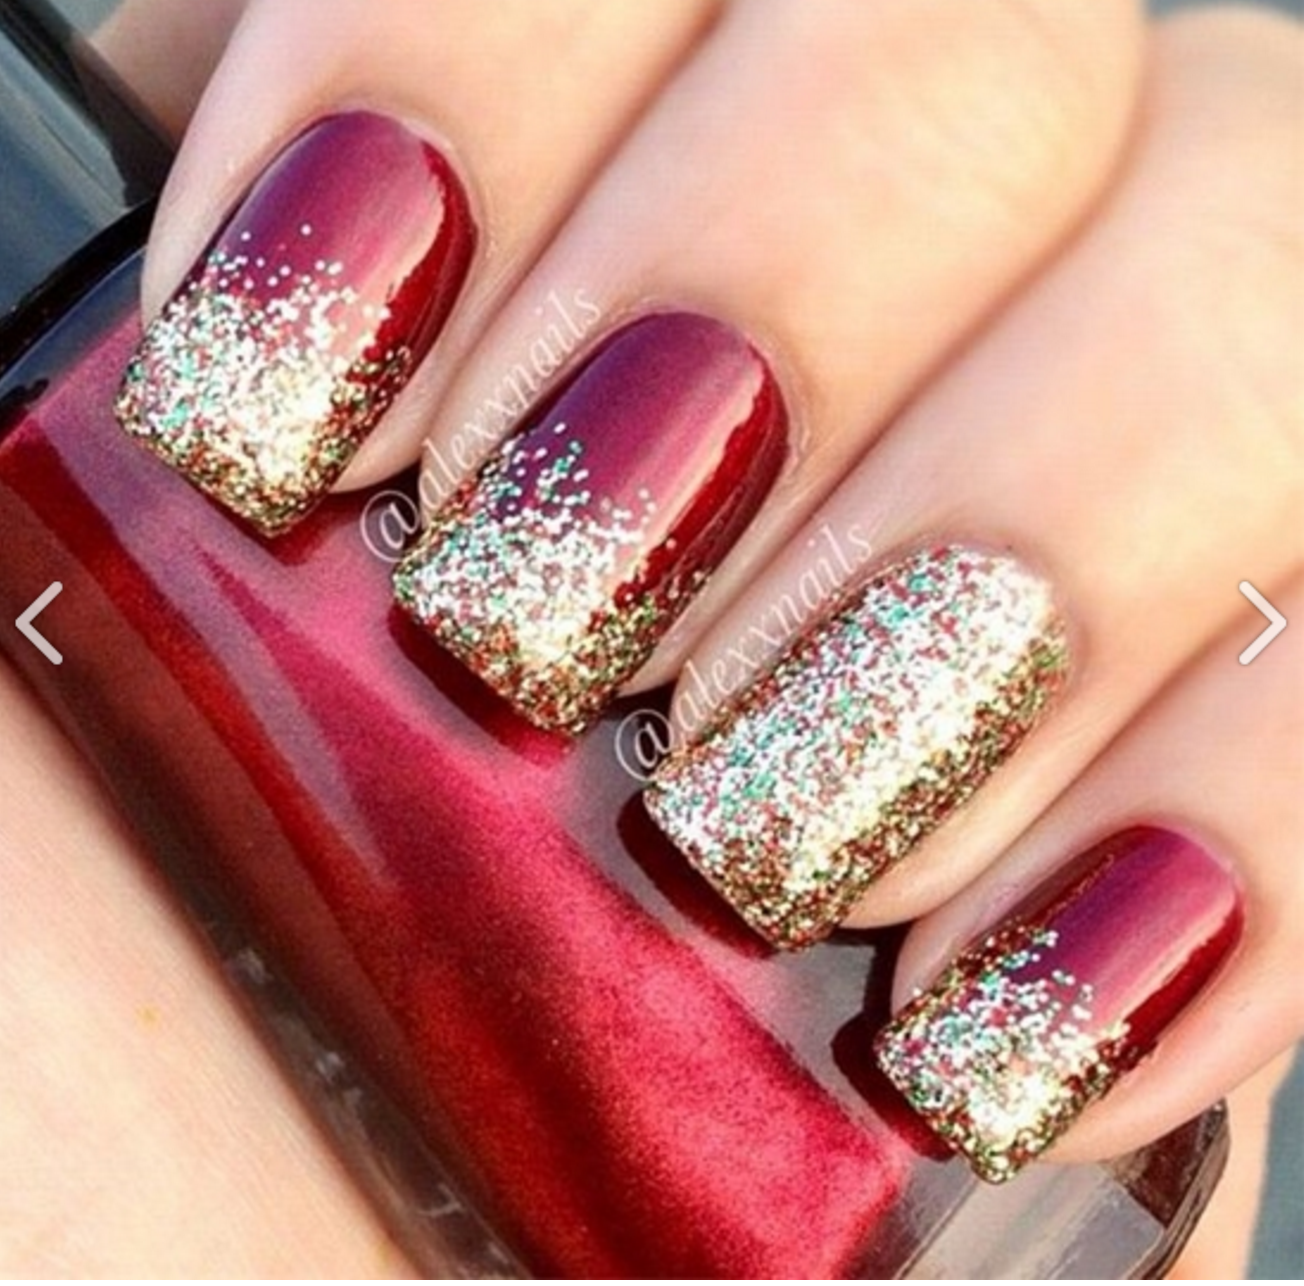 Pin von Avery Dominique auf Nails!!! | Pinterest | Nagelschere ...